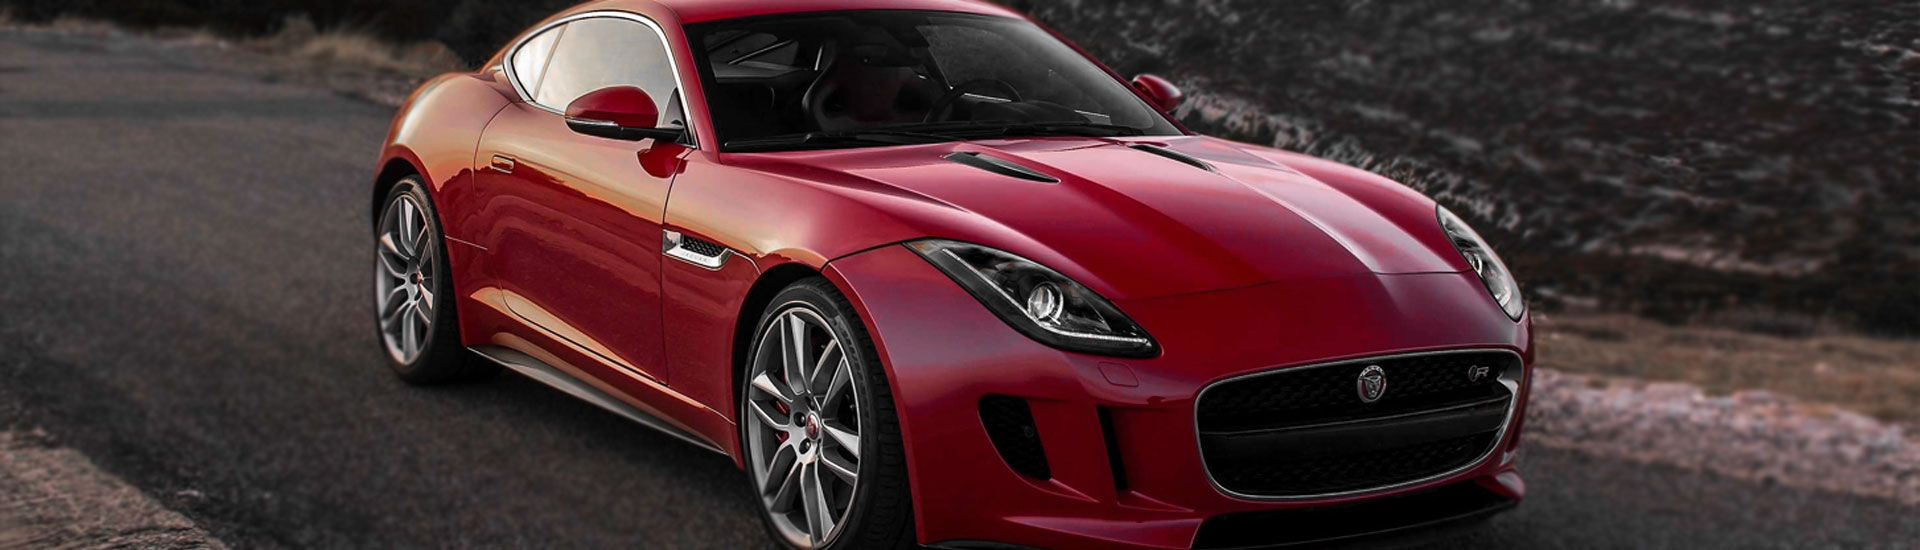 Jaguar F-Type Window Tint